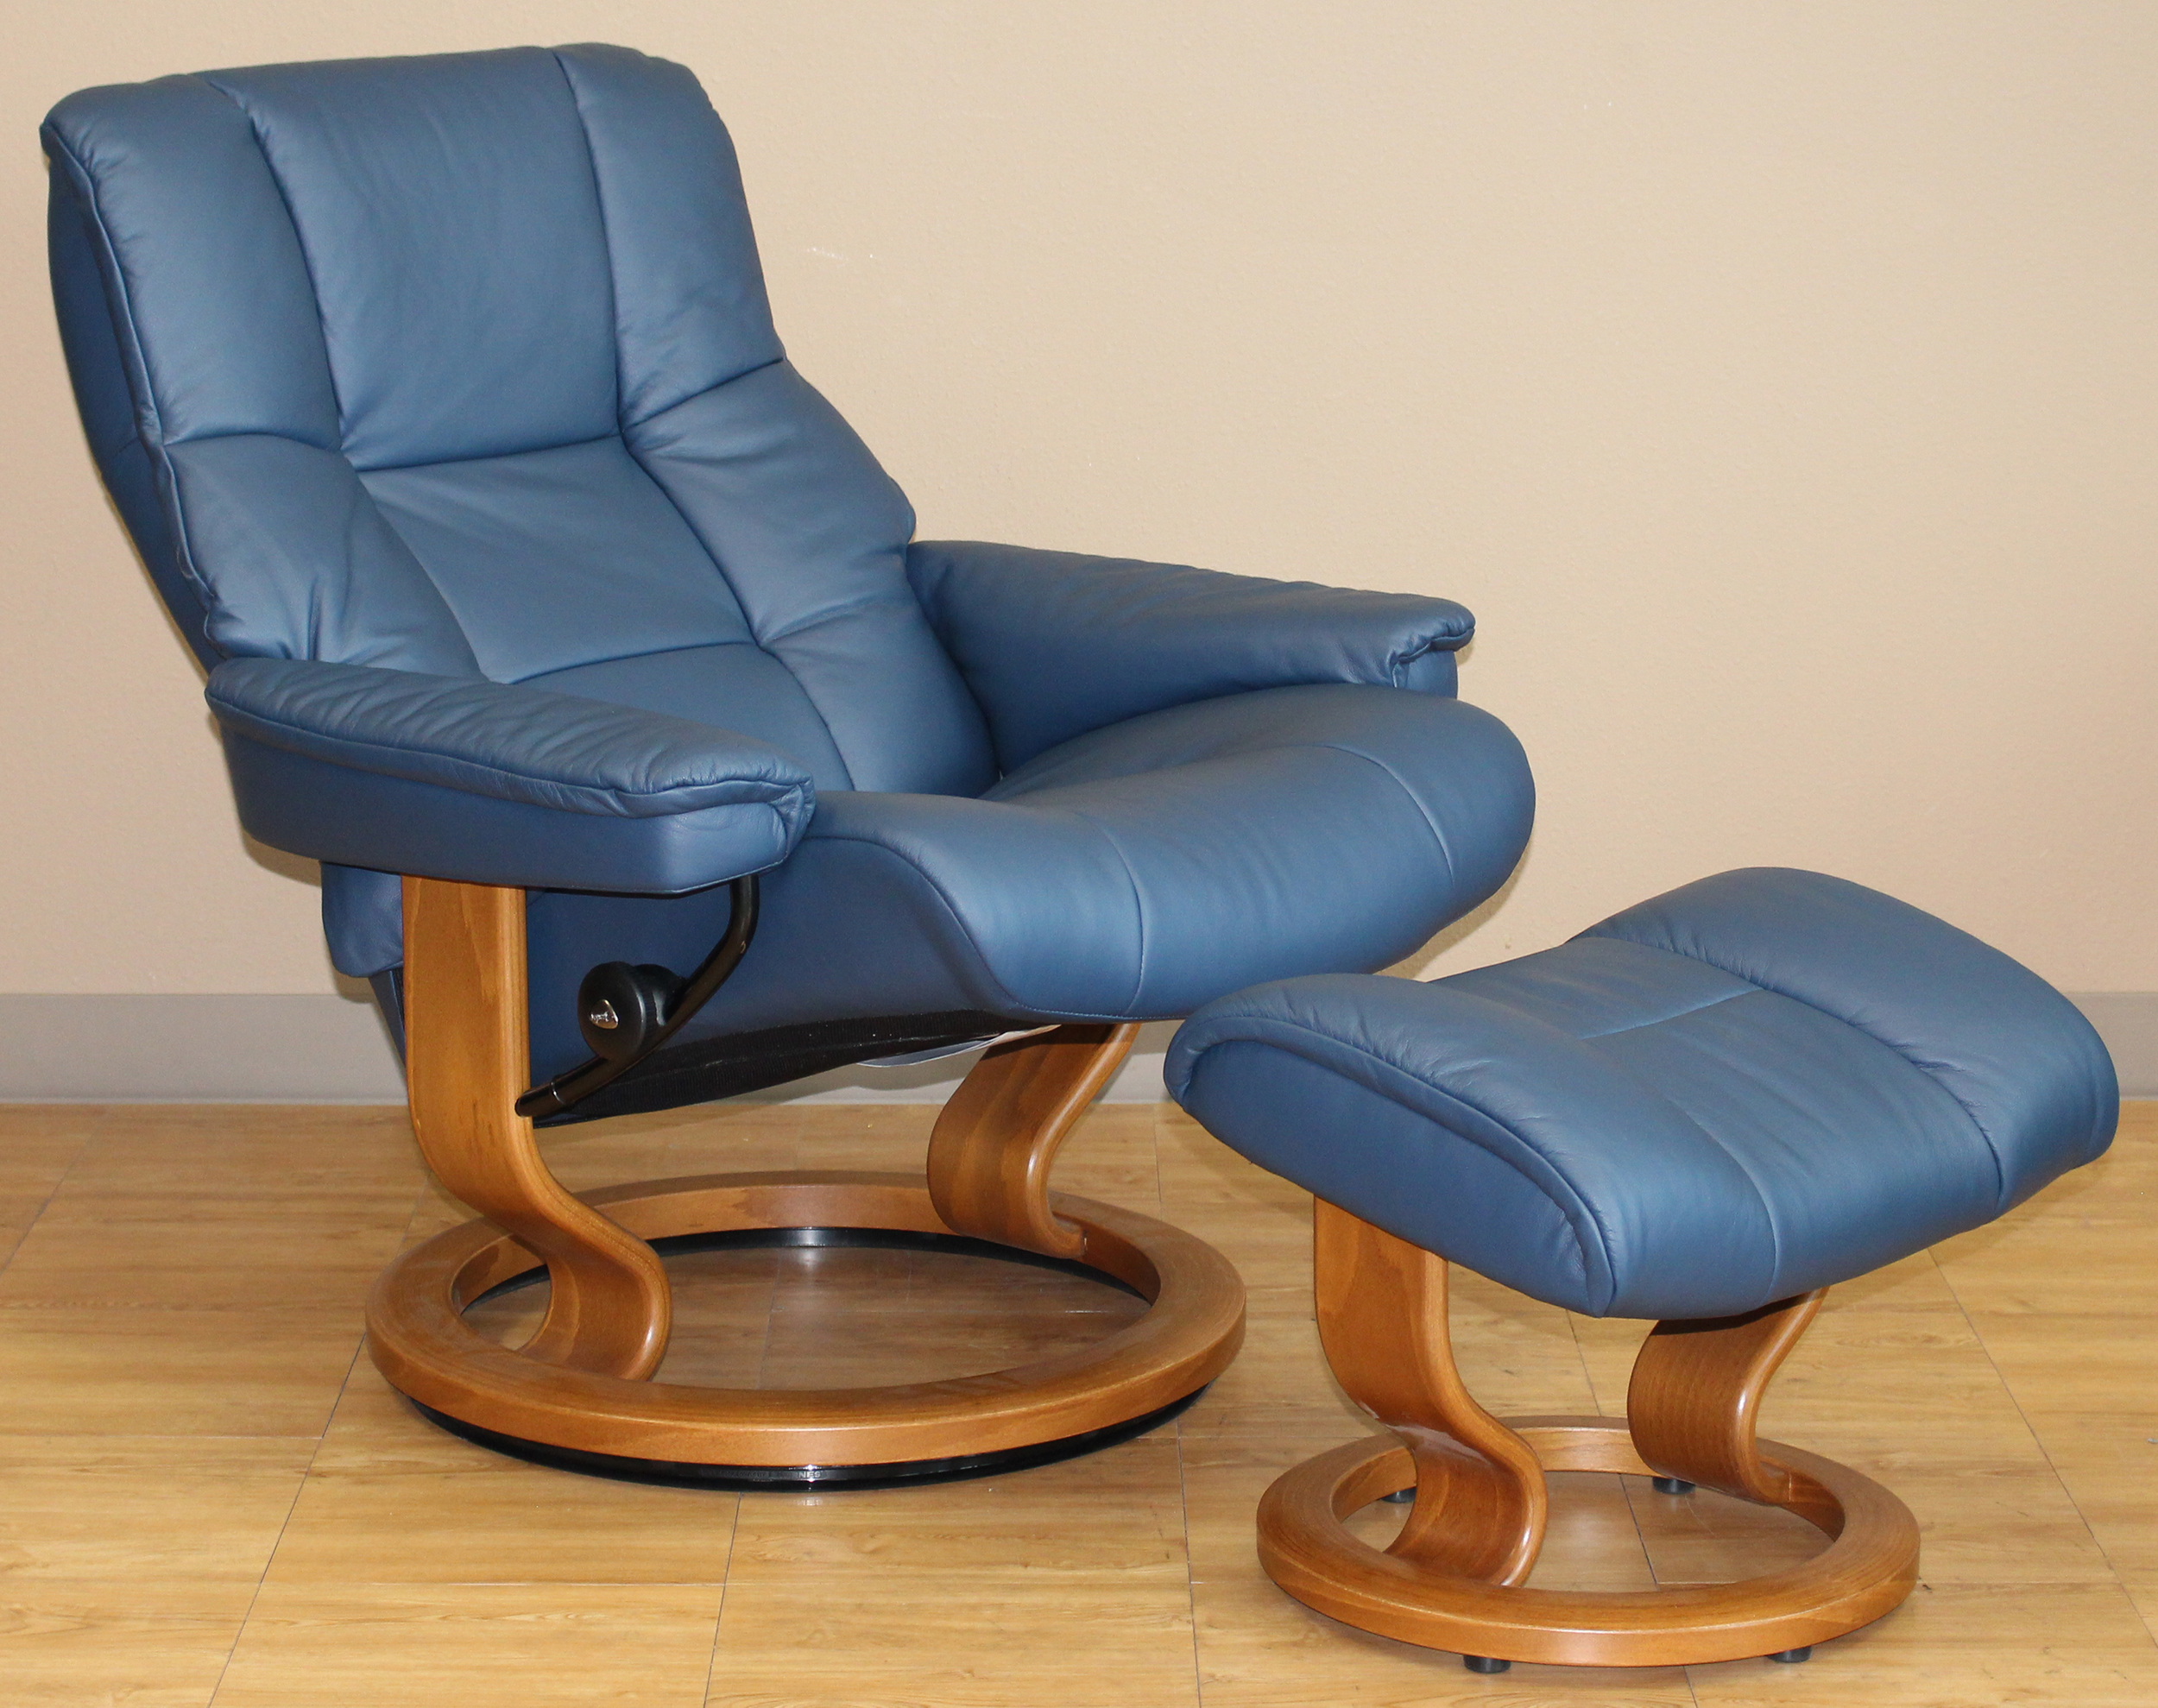 Ekornes Chairs Stressless Kensington Large Mayfair Paloma Oxford Blue